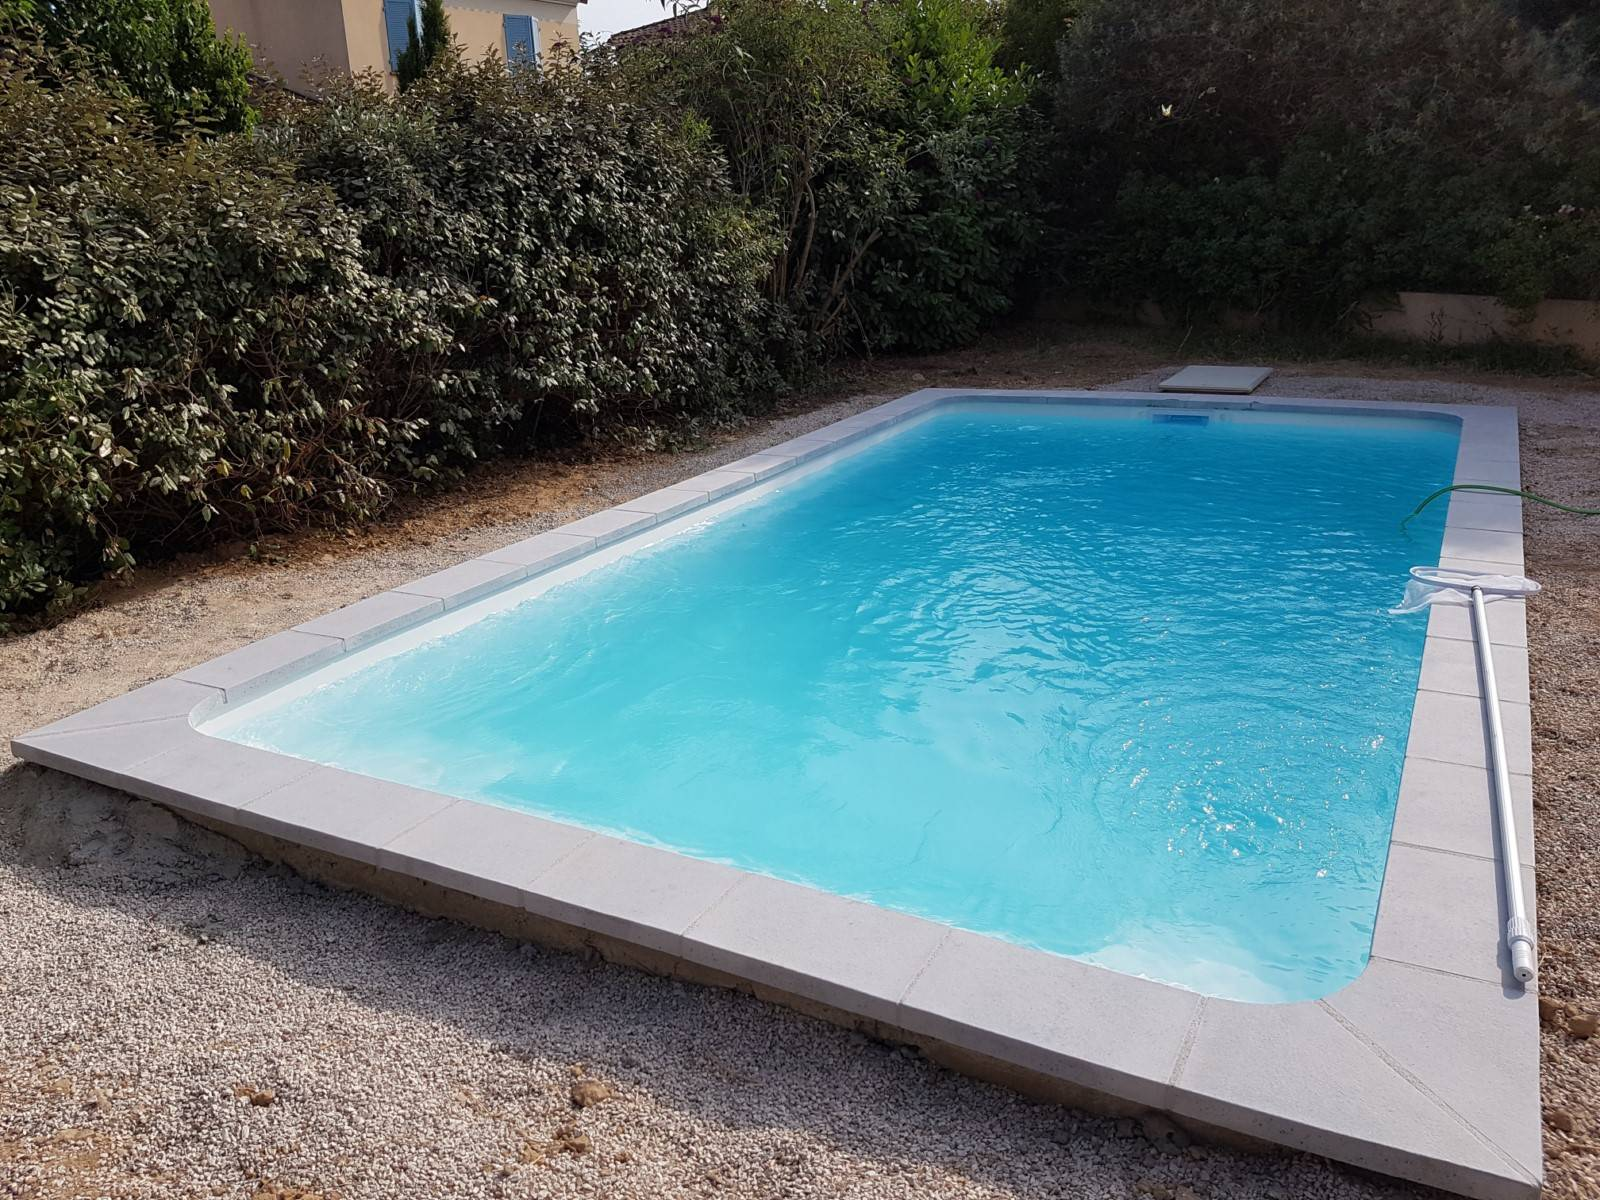 Coque polyester kit acores france piscines composites for Piscine coque kit